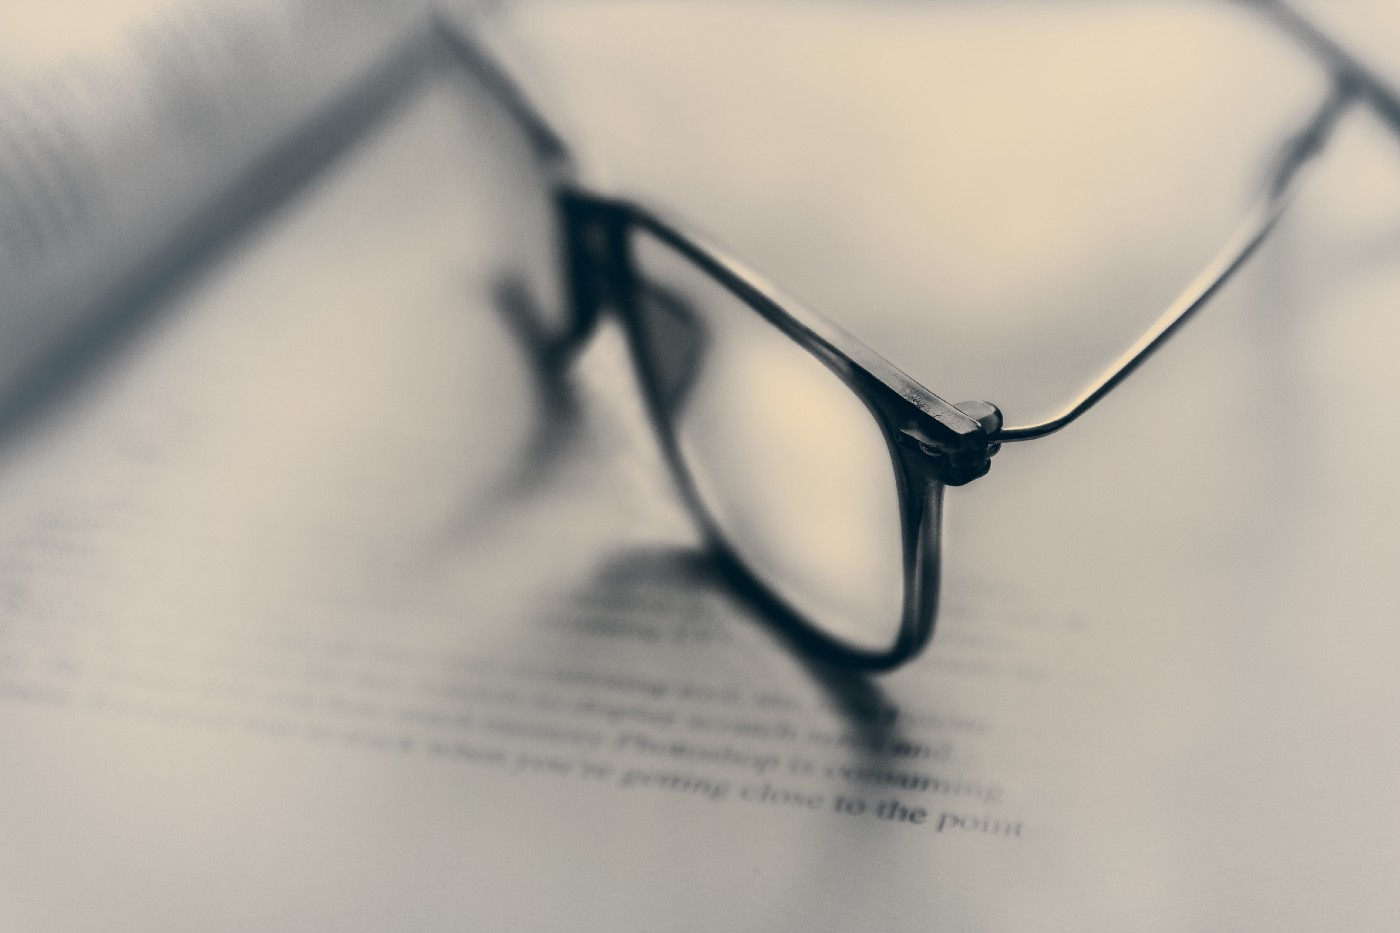 Glasses blurred on top of an opened book.